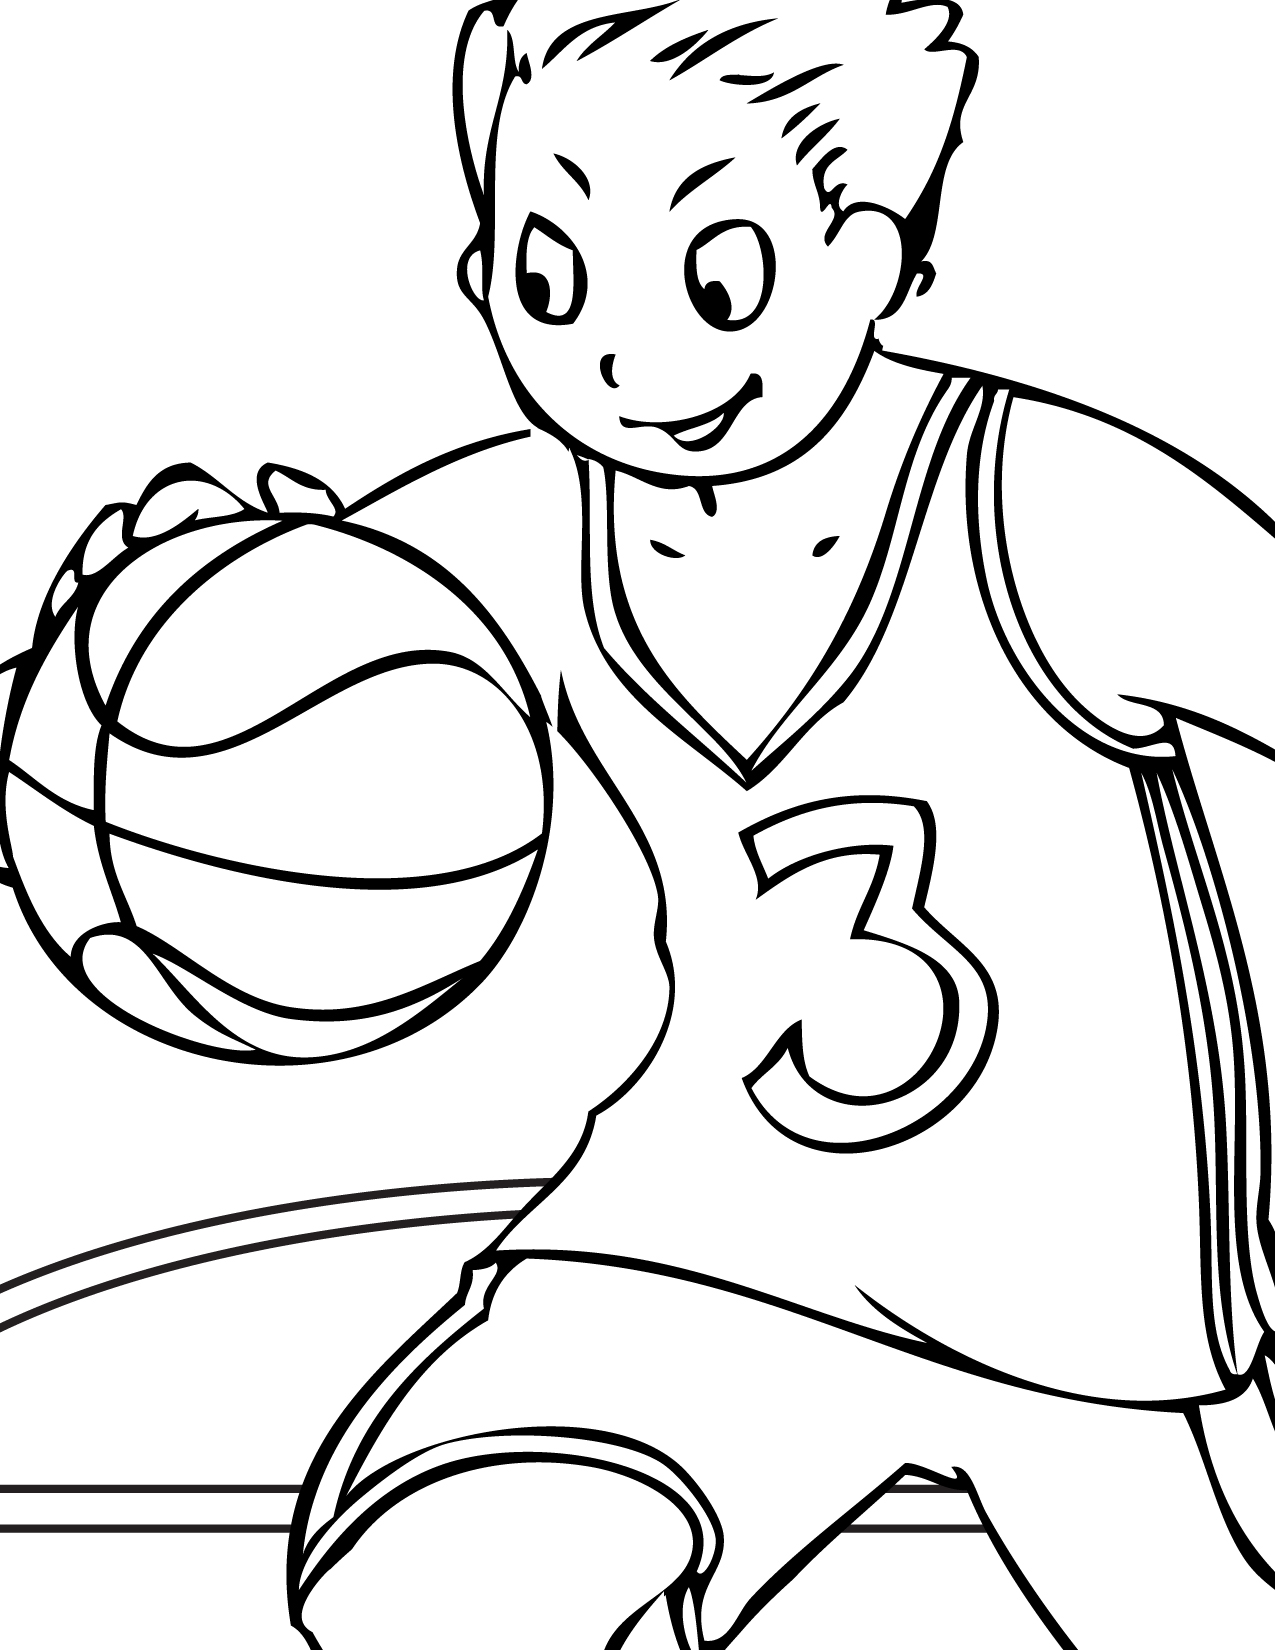 Sports Drawing For Kids At Getdrawings